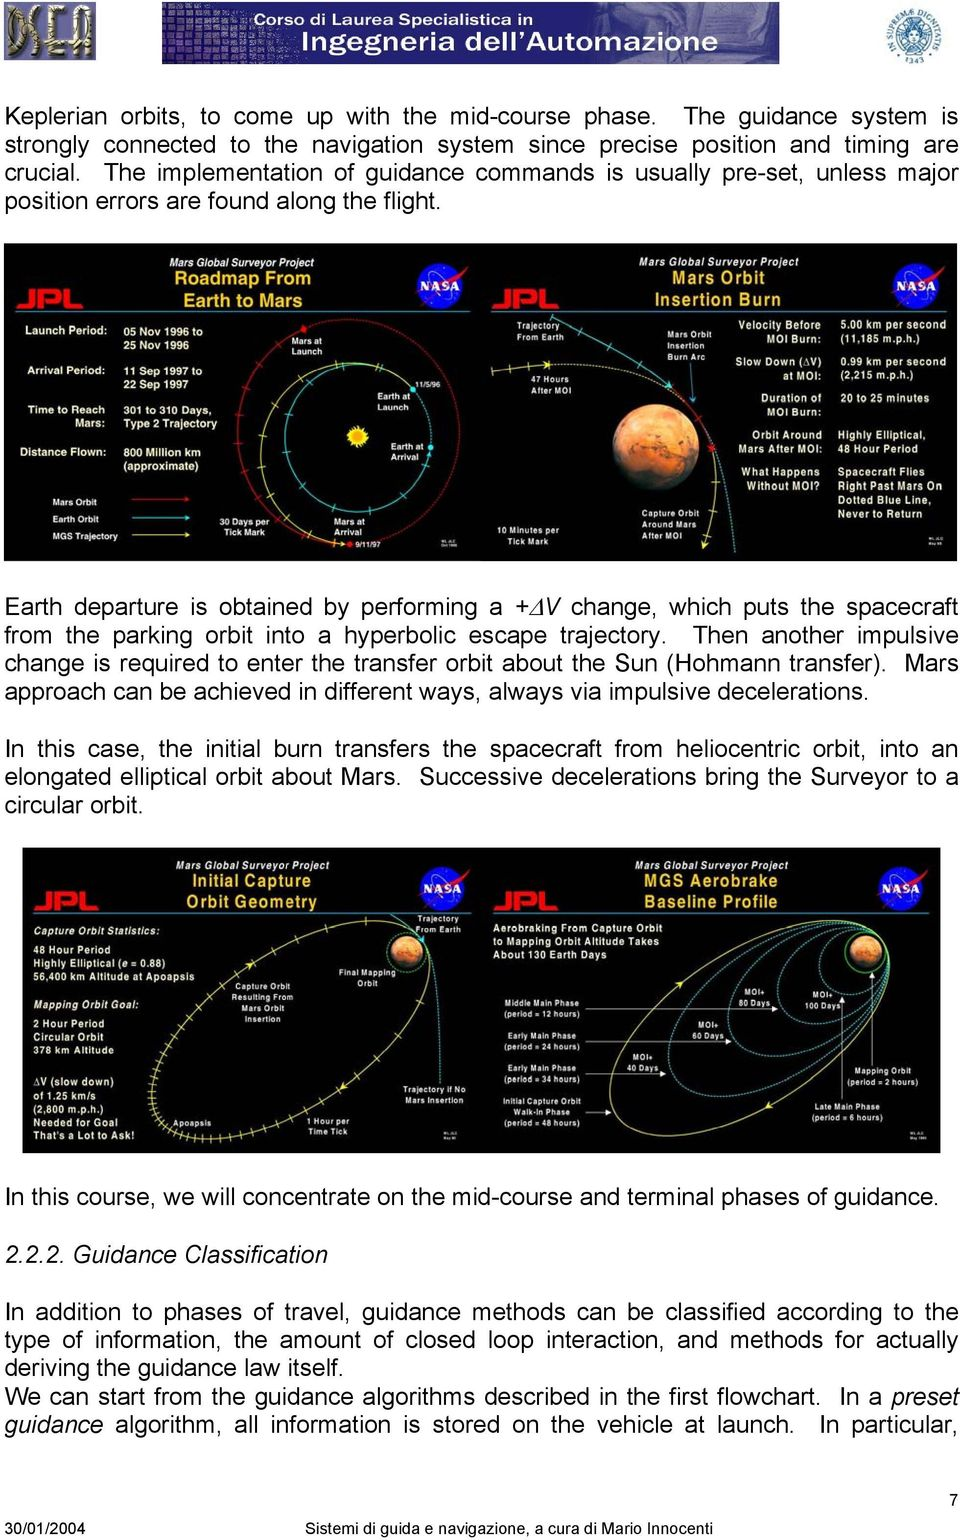 Earth departure is obtained by performing a + V change, which puts the spacecraft from the parking orbit into a hyperbolic escape trajectory.